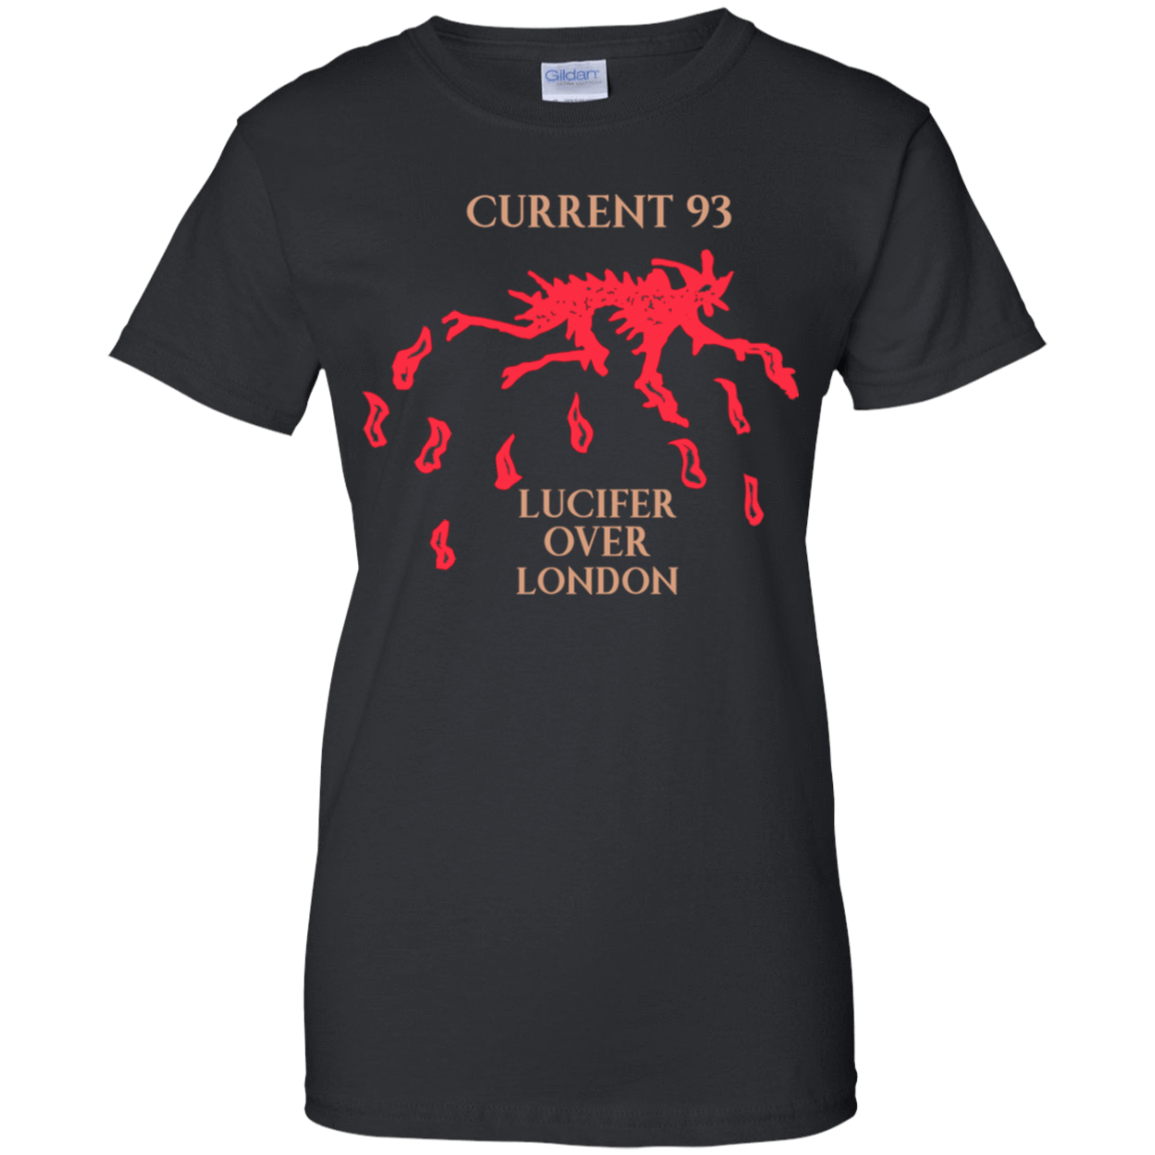 Current 93 Lucifer Over London 939-9248-73890762-44695 - Tee Ript